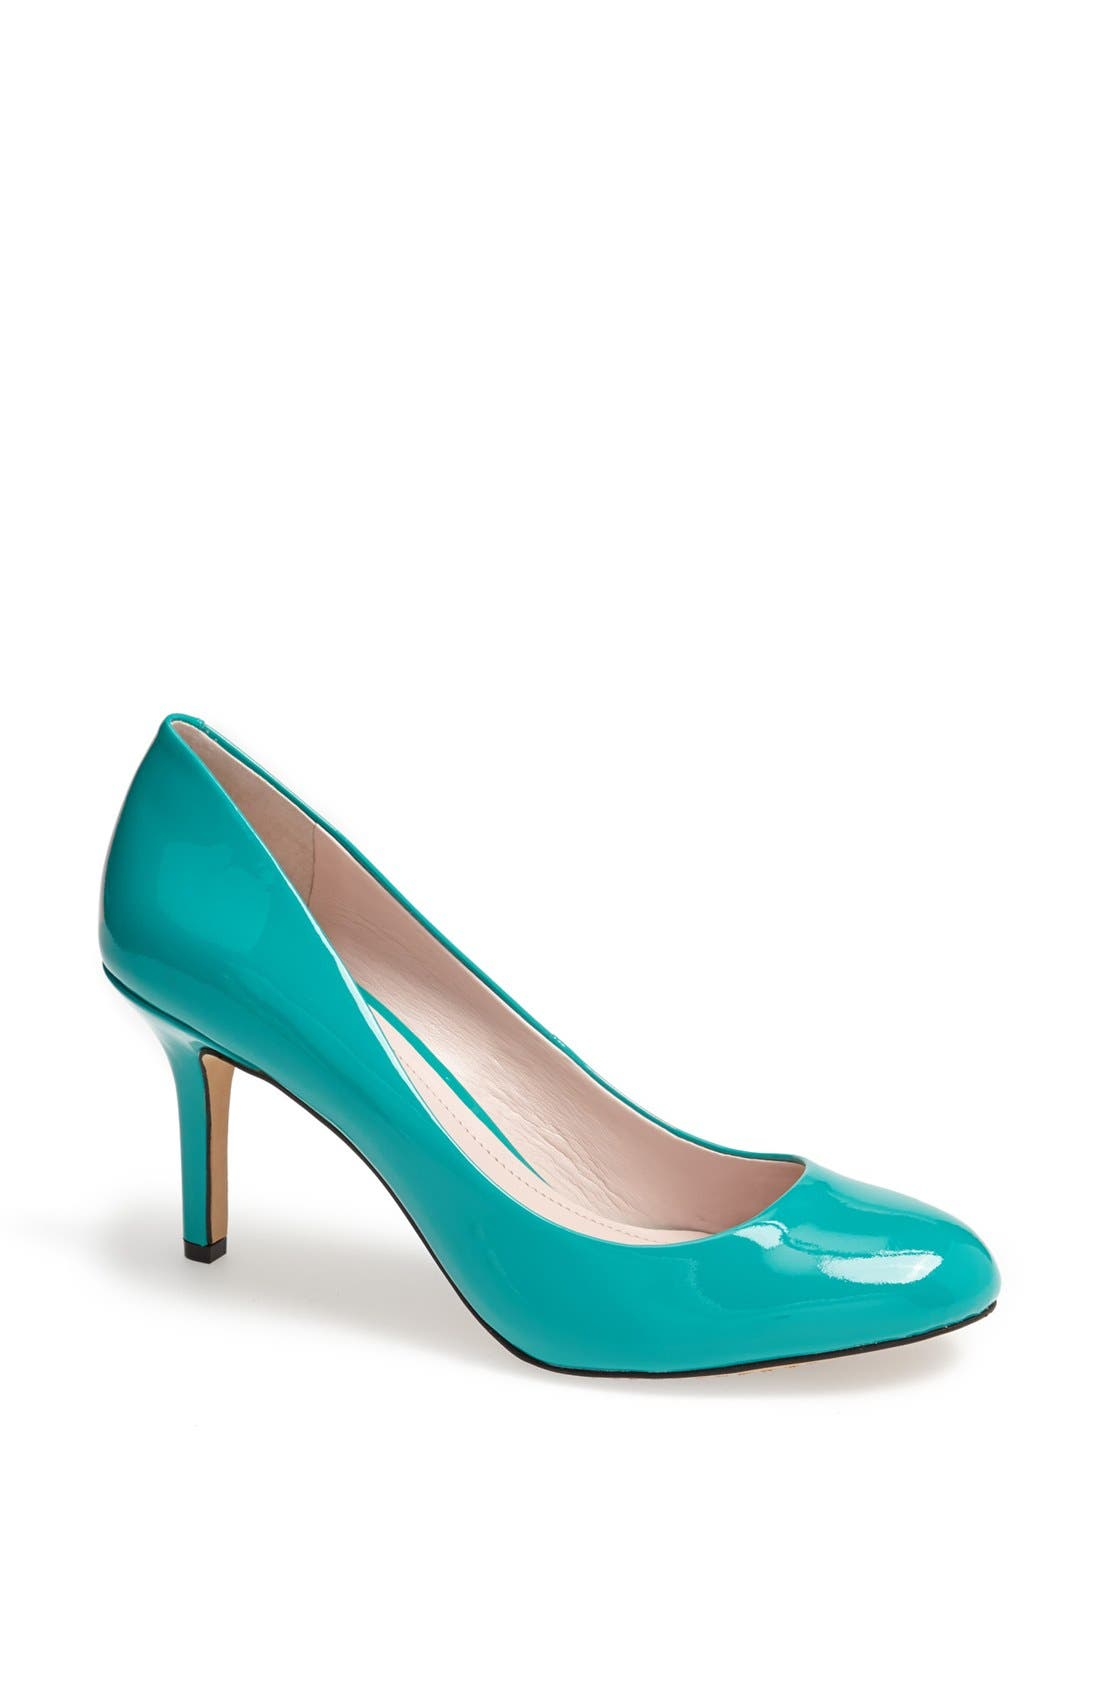 Alternate Image 1 Selected - Vince Camuto 'Sariah' Patent Leather Pump